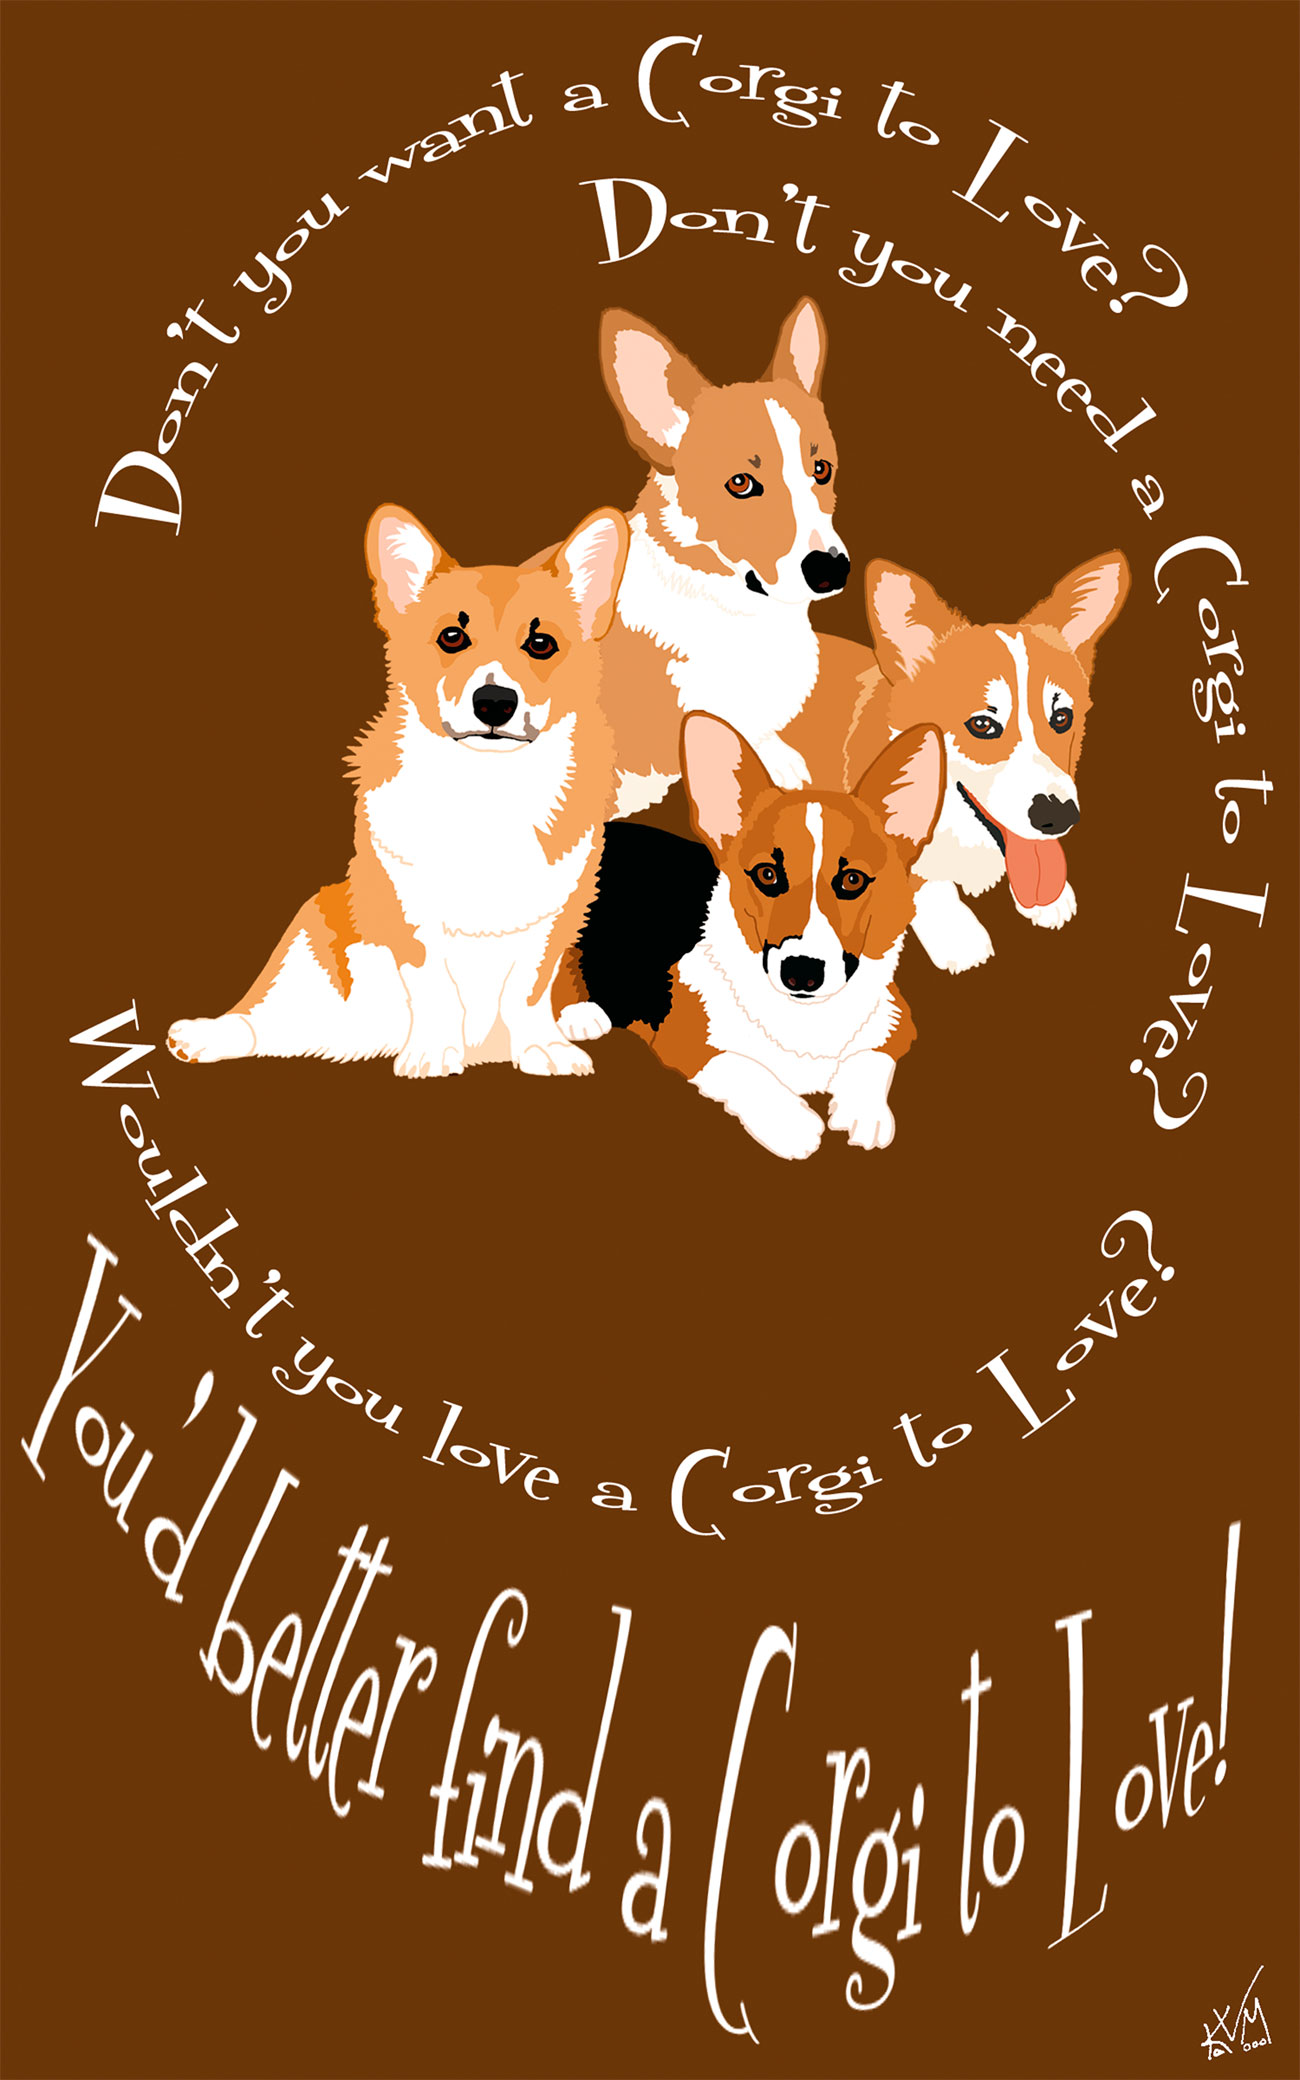 A Corgi to Love (213)